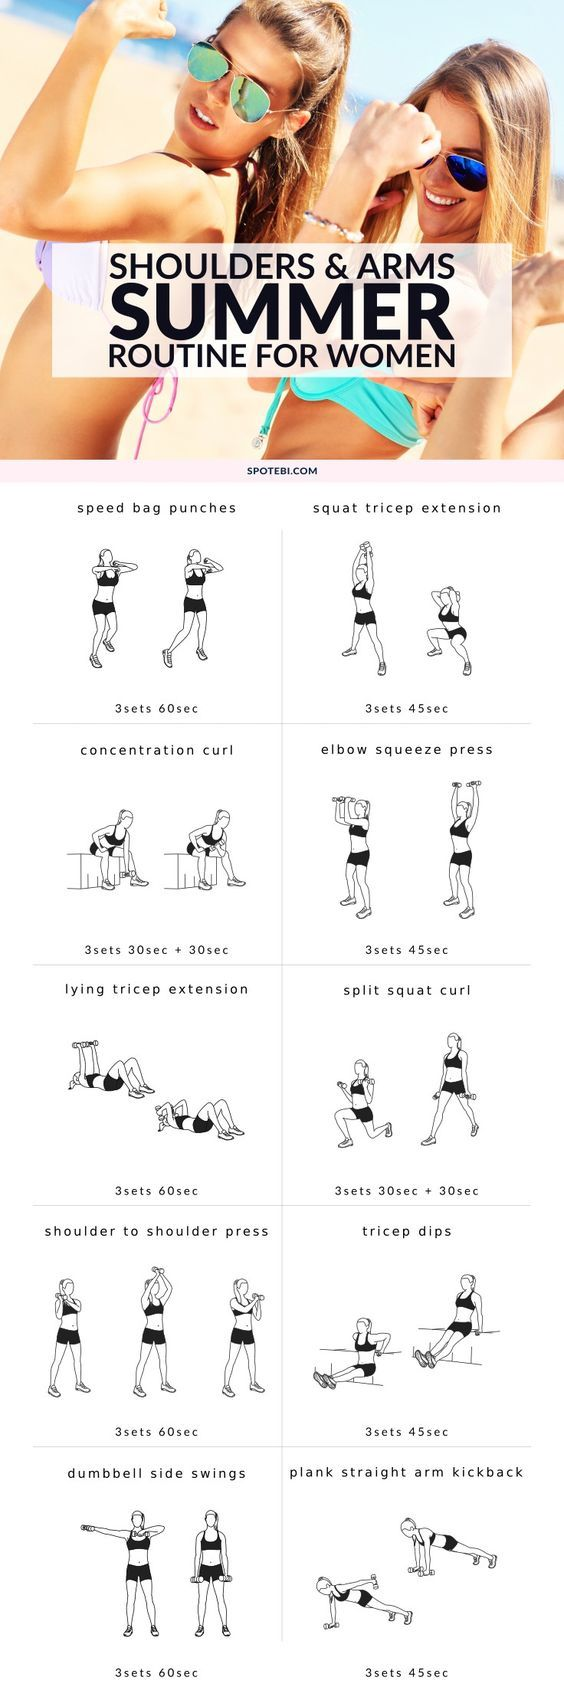 Get your upper body fit and toned for Summer with this shoulders and arms workout for women. A complete 30 minute circuit that combines cardio and strength training moves to create a well-rounded, fat-burning routine. http://www.spotebi.com/workout-routines/shoulders-arms-workout-for-women/ #weightlossbeforeandafter